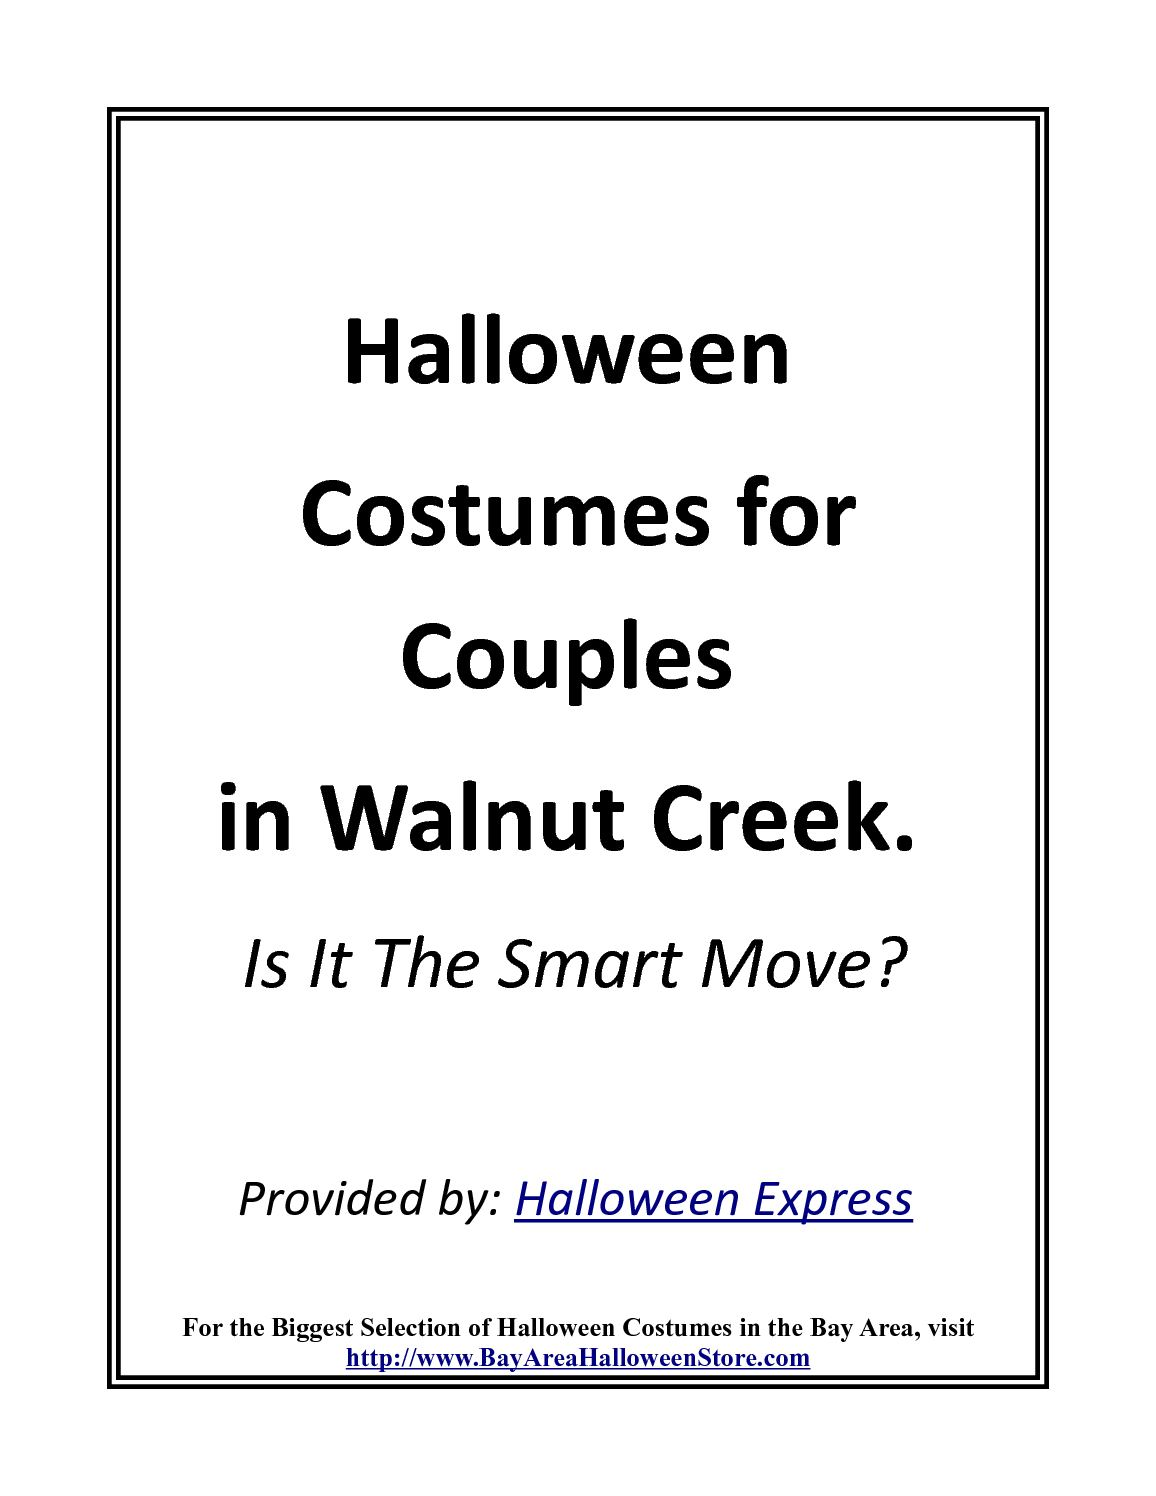 calaméo - halloween costumes for couples. is it smart in walnut creek?